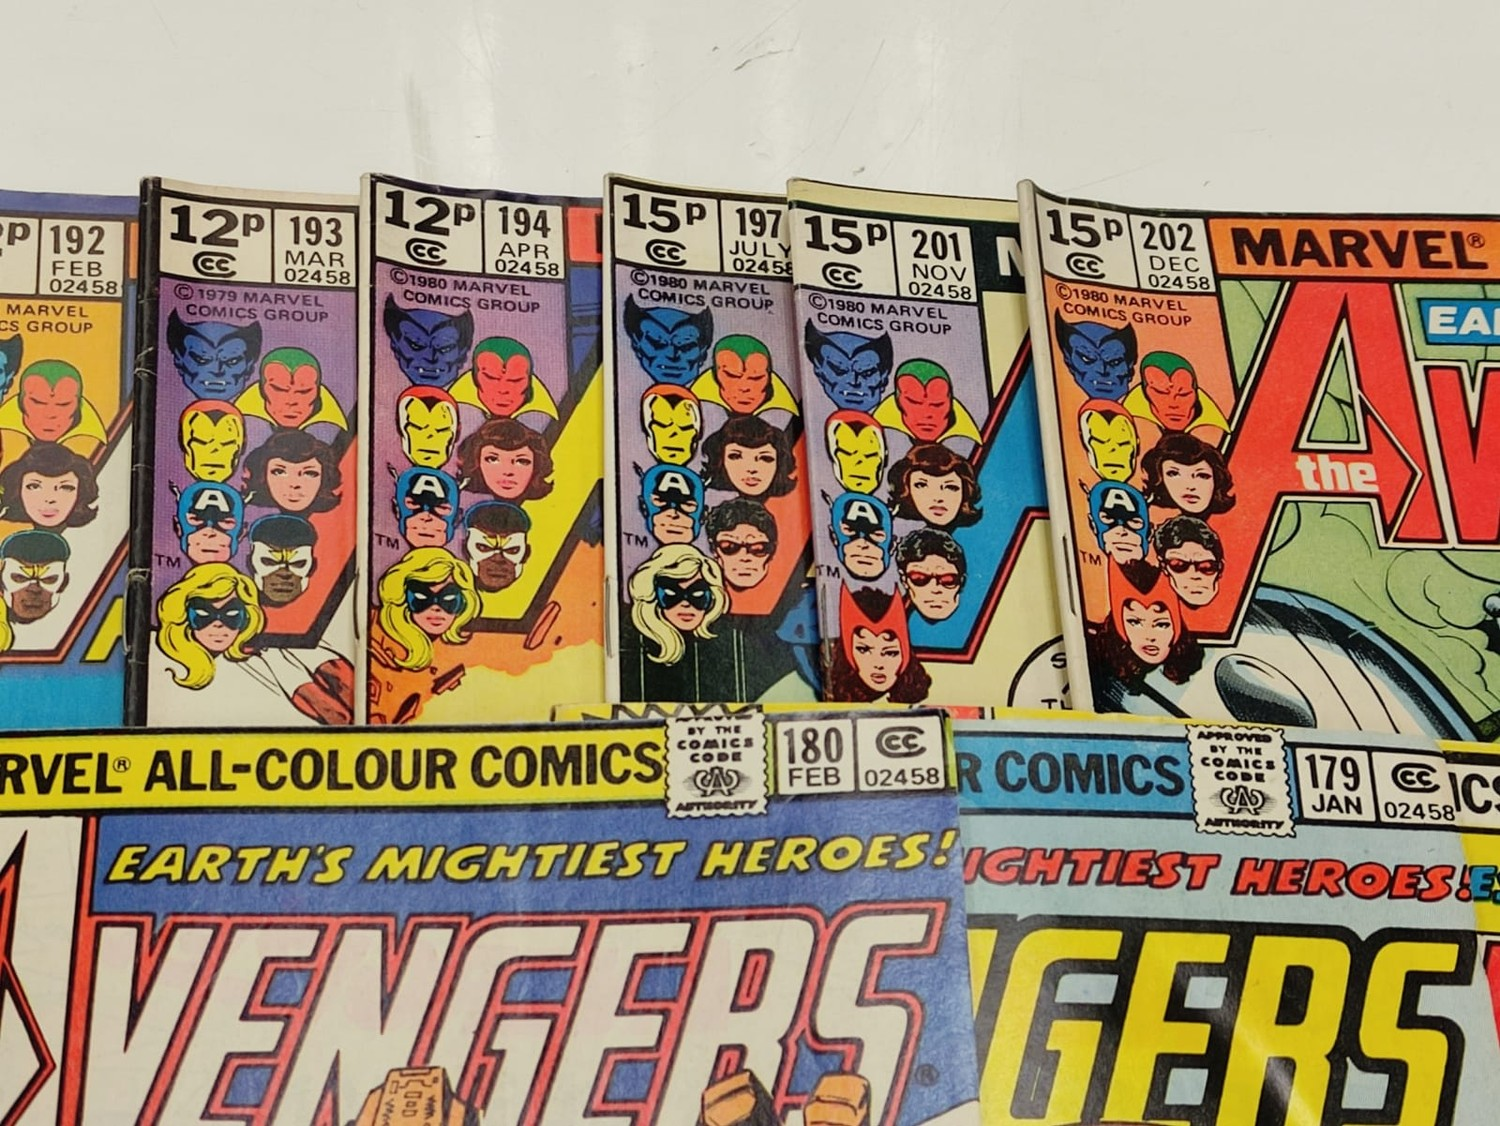 17 editions of Vintage Marvel 'The Avengers' comics in very good condition. - Image 8 of 12